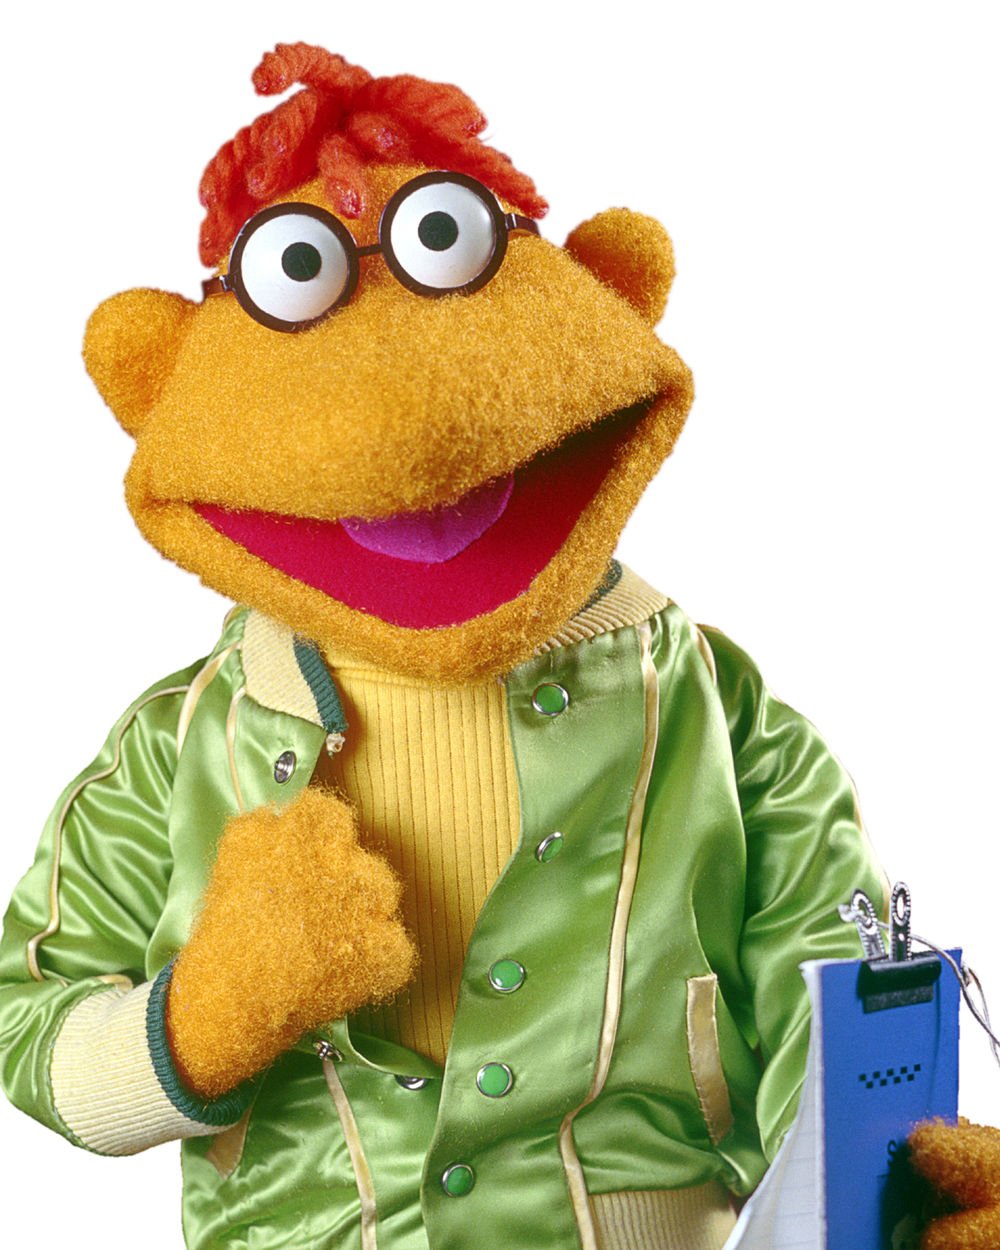 The Sesame Street character youd most like to see in